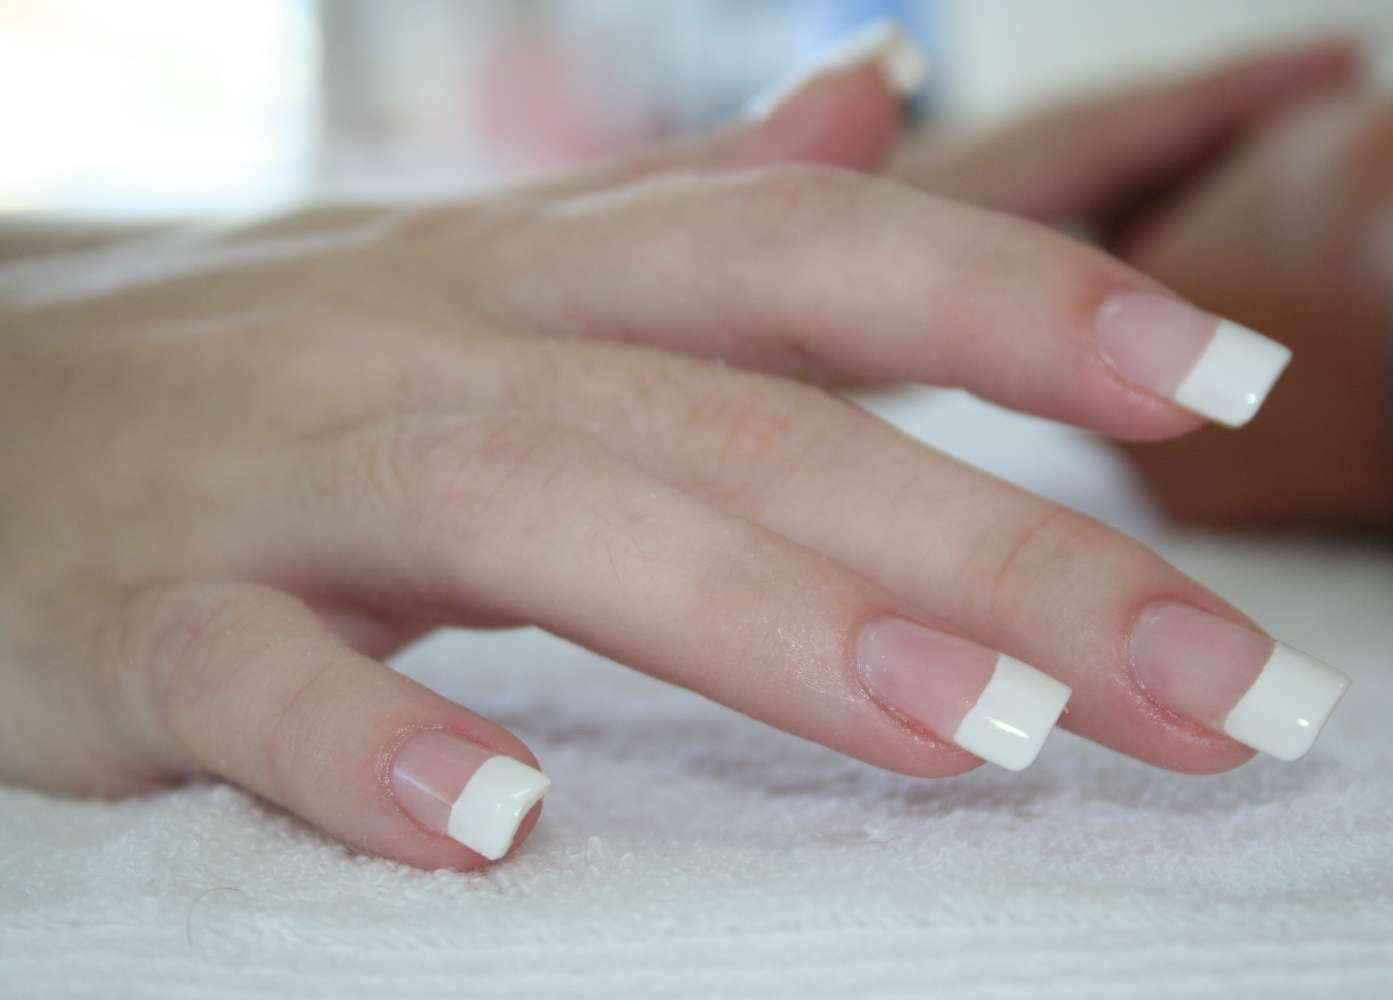 DEALARROW: Silk nail extension